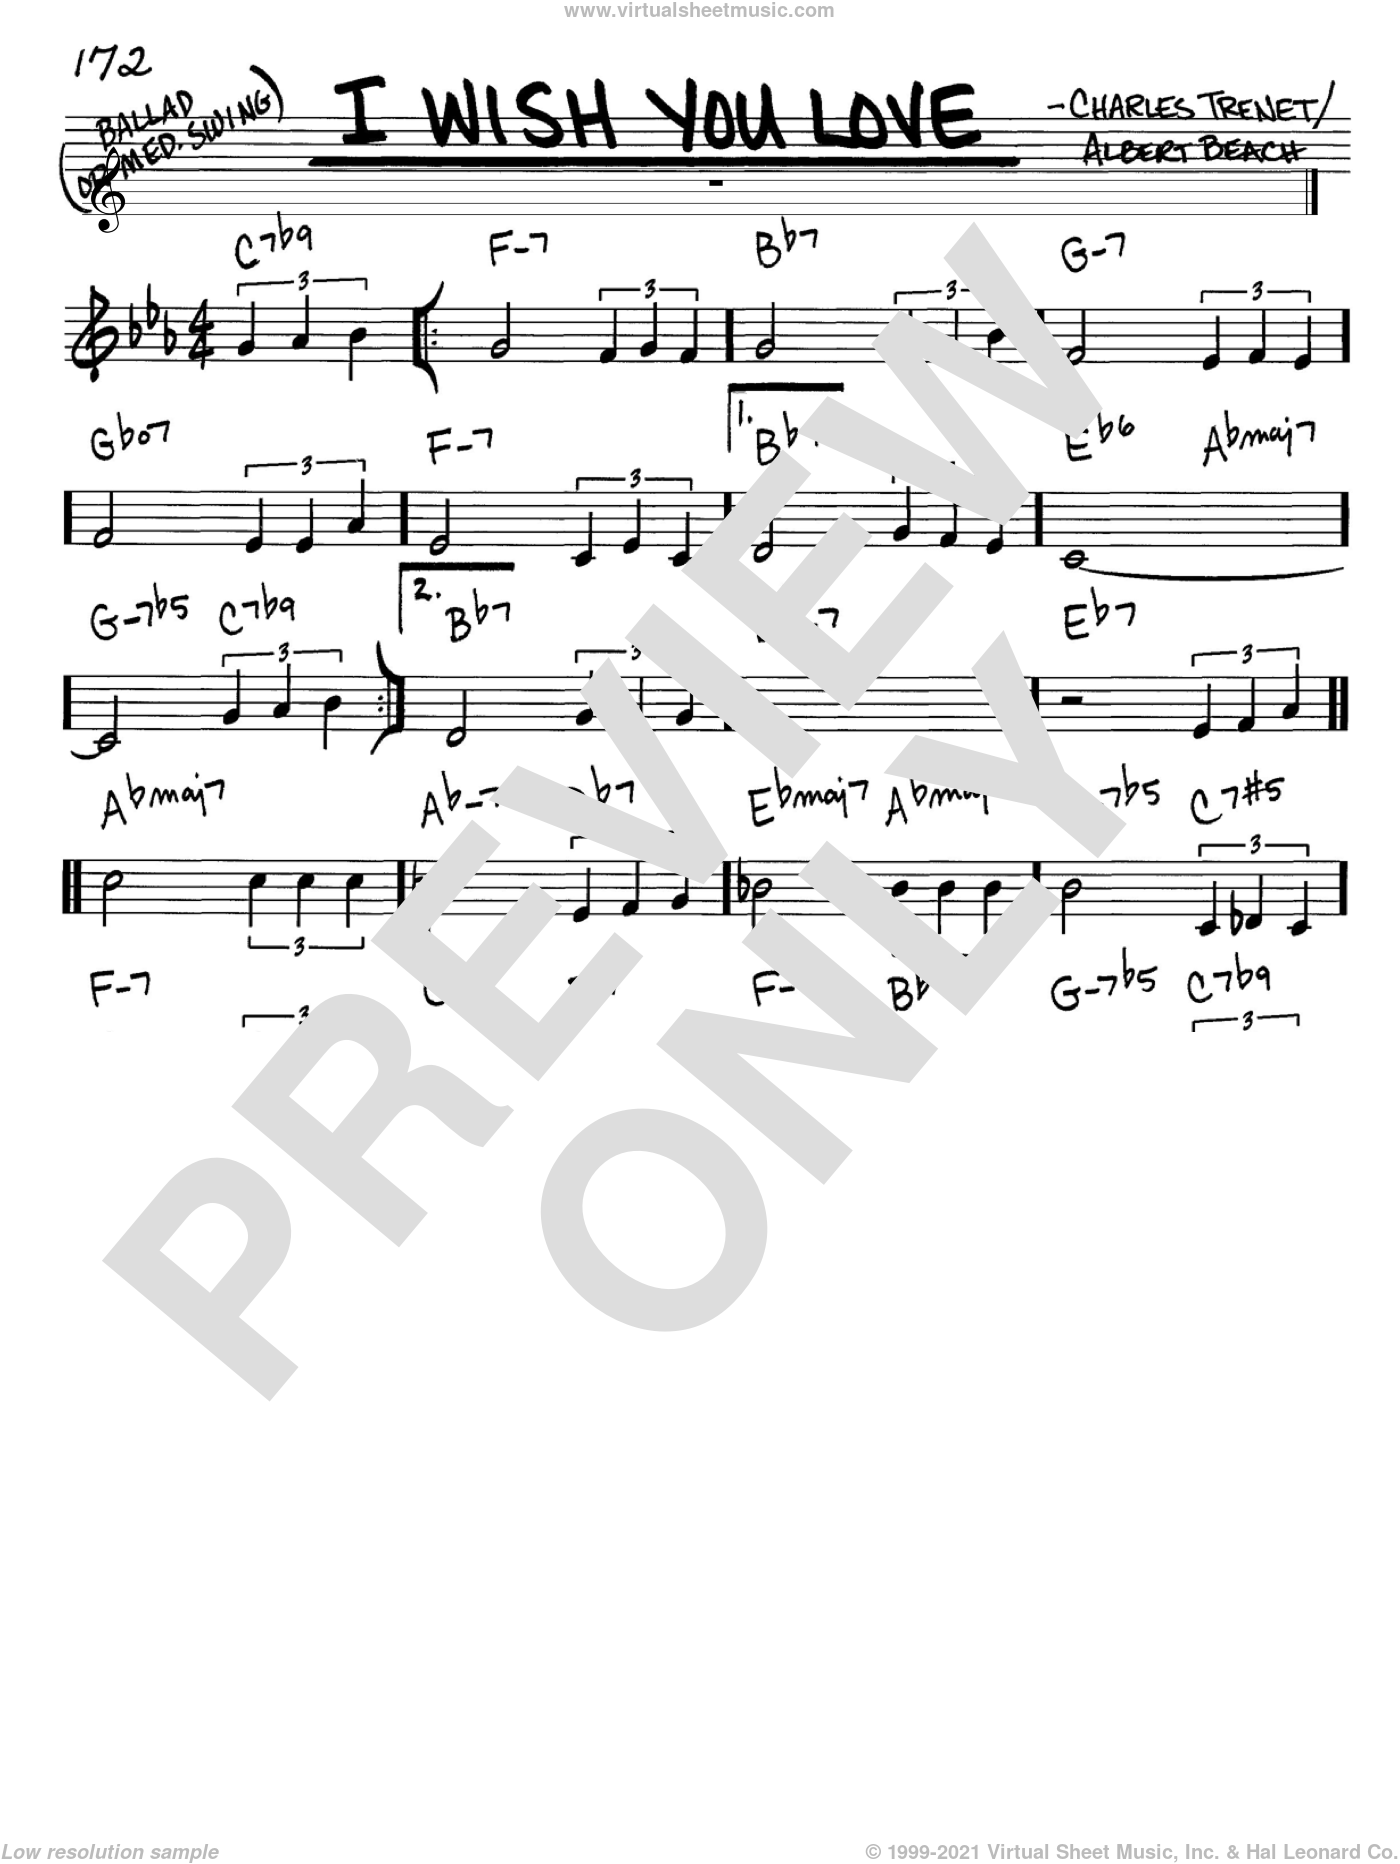 I Wish You Love sheet music for voice and other instruments (C) by Charles Trenet